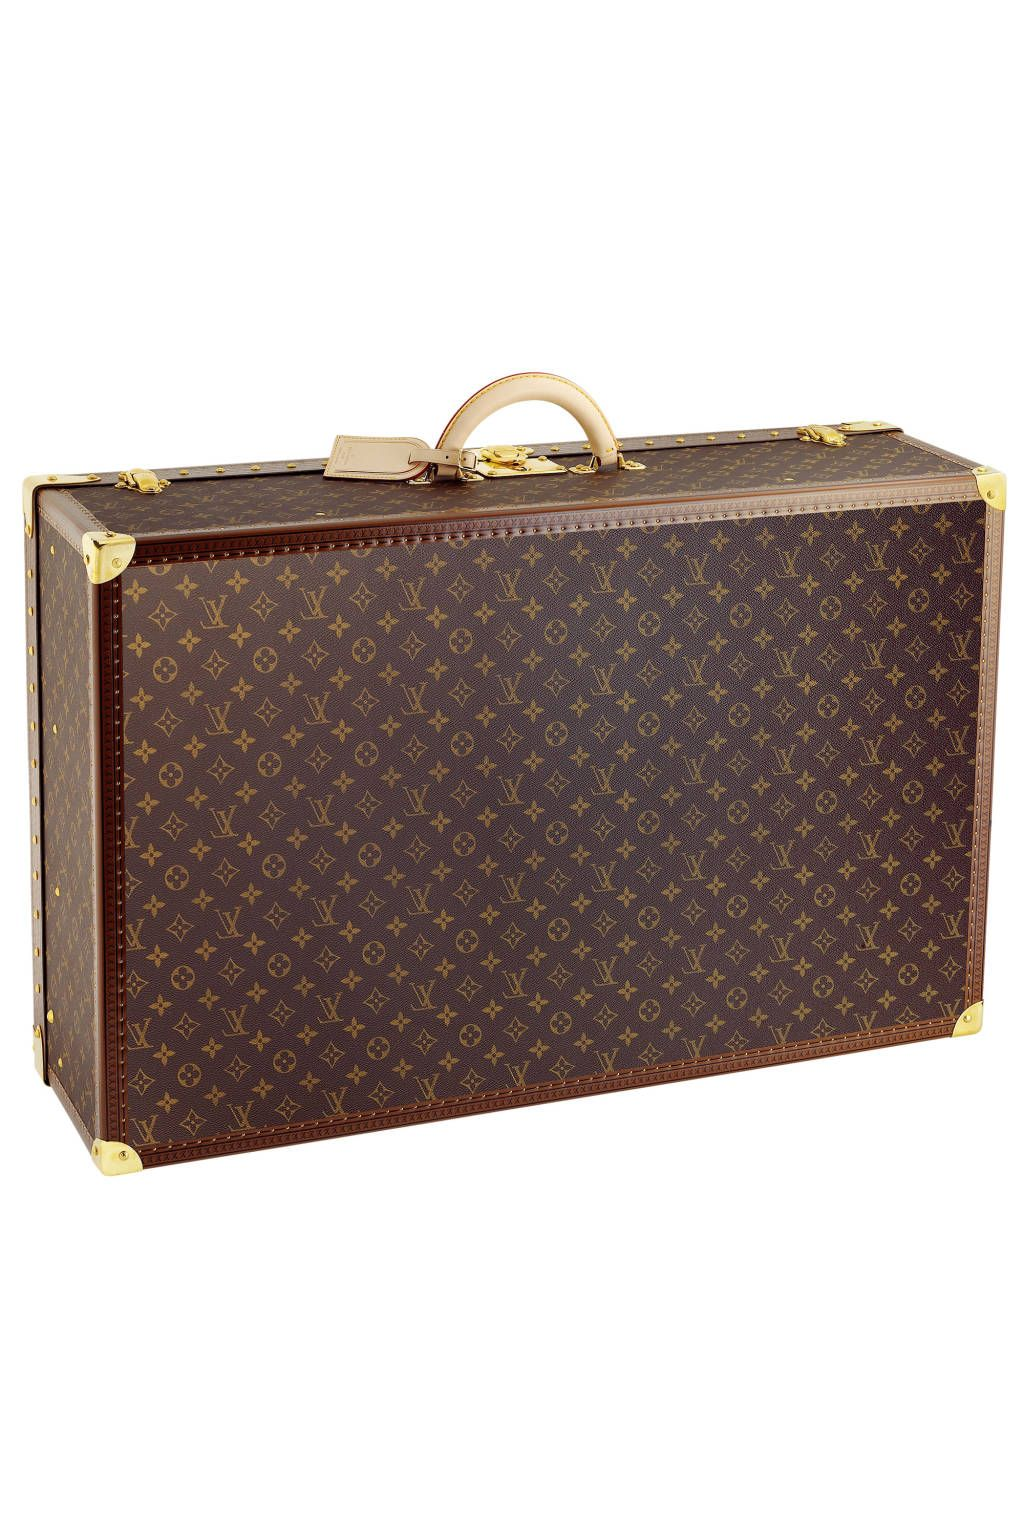 d519605af Iman's Holiday Must-Haves Louis Vuitton Suitcase, Louis Vuitton Trunk, Louis  Vuitton Artsy